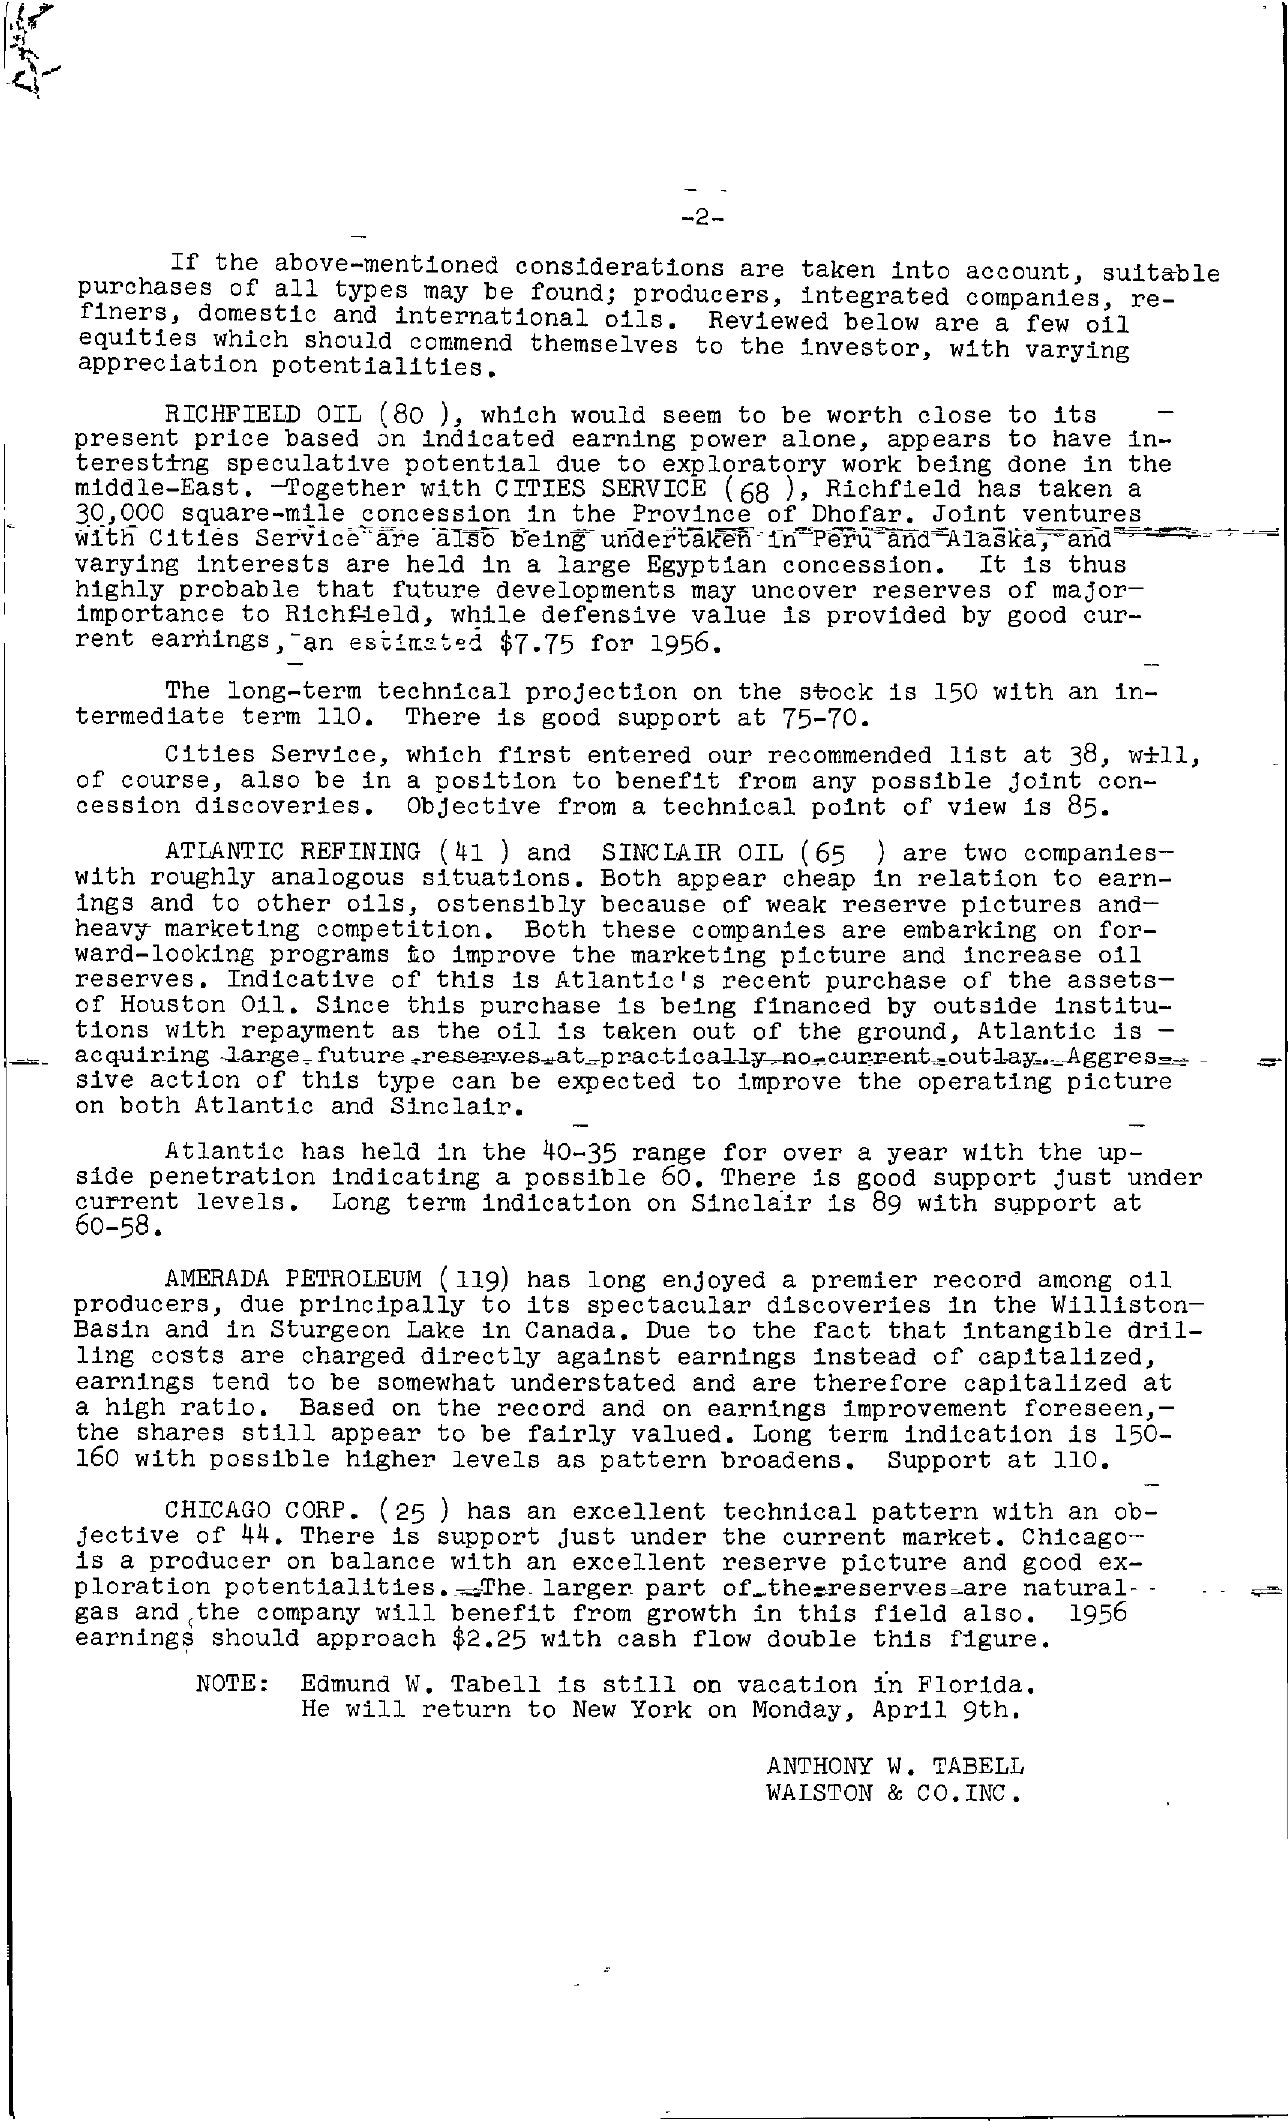 Tabell's Market Letter - March 29, 1956 page 2